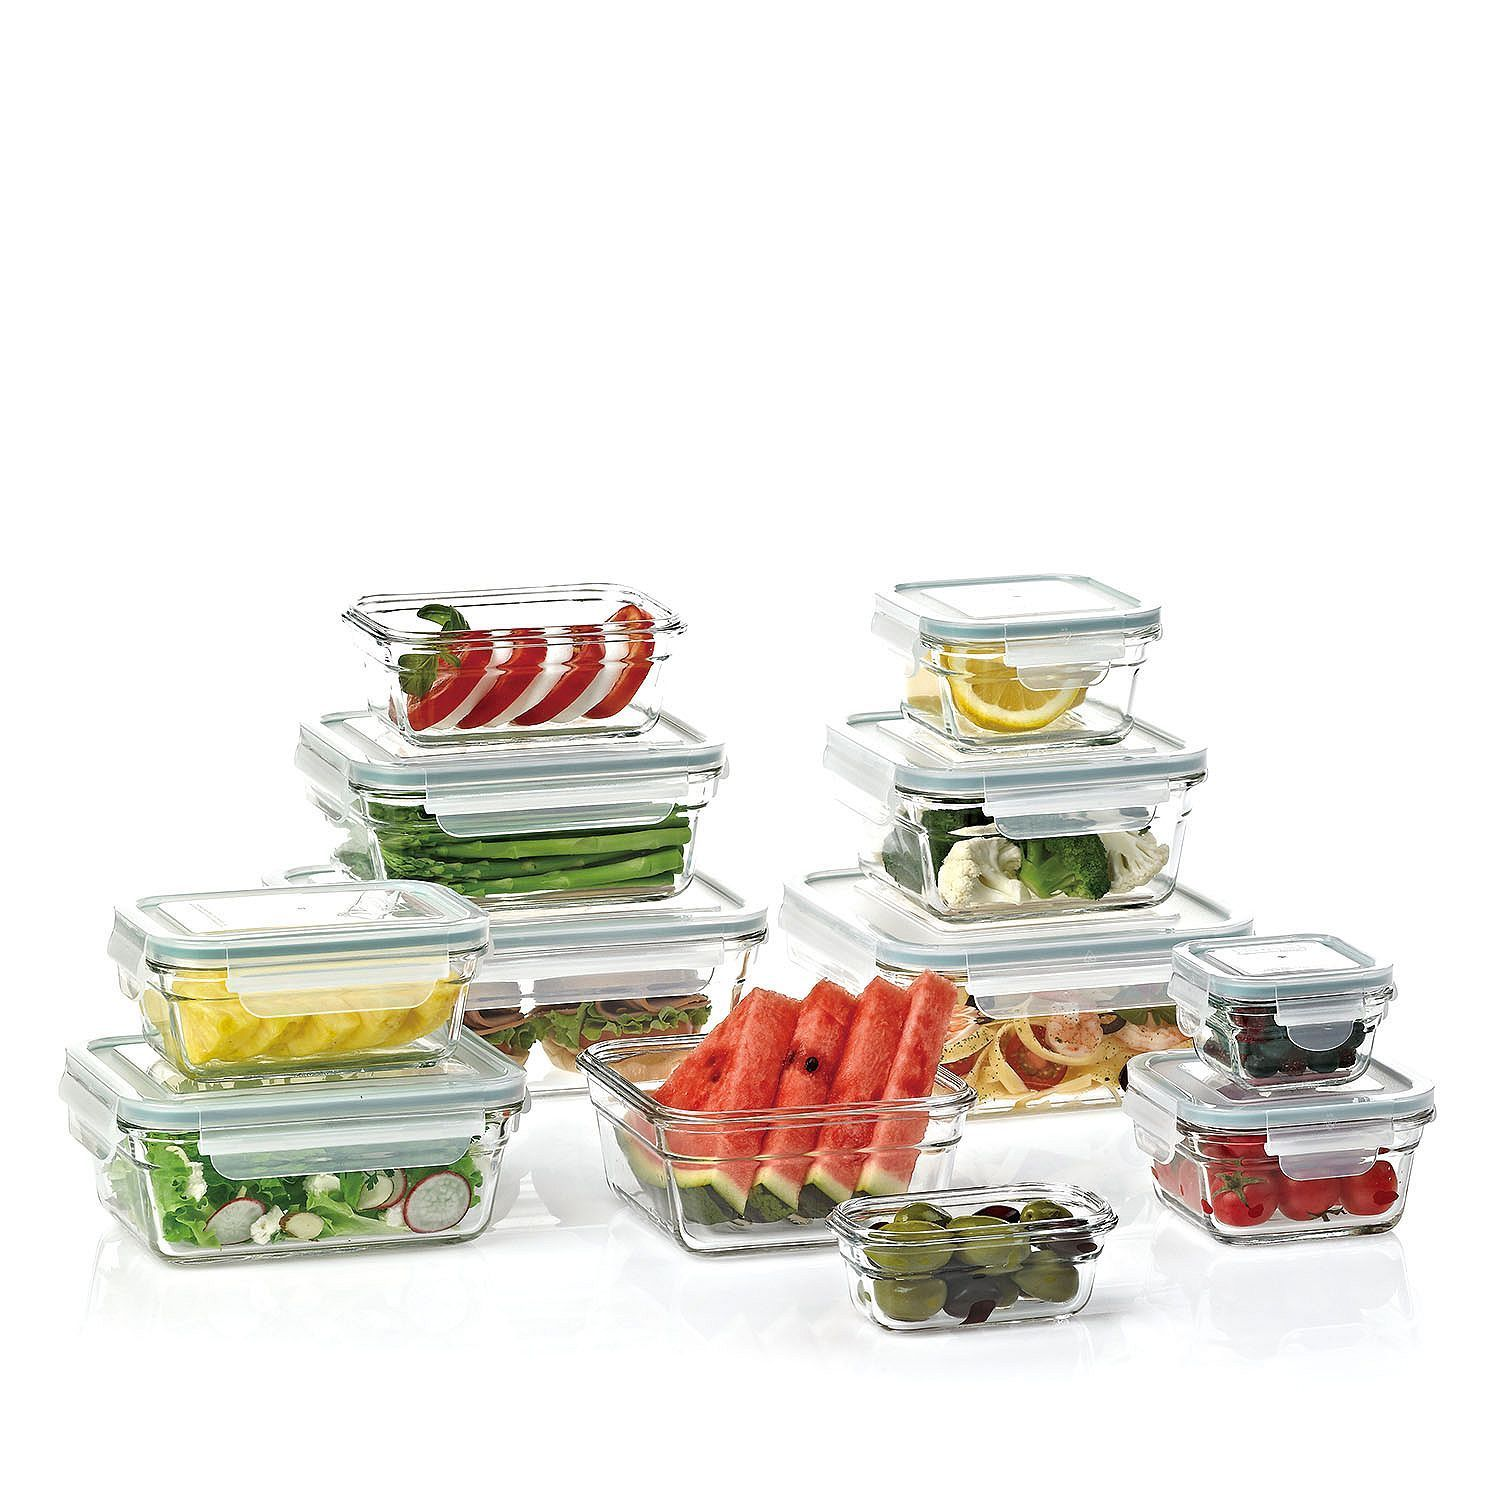 Member's Mark 24-Piece Glass Food Storage Set by Glasslock  FREE SHIPPING 1